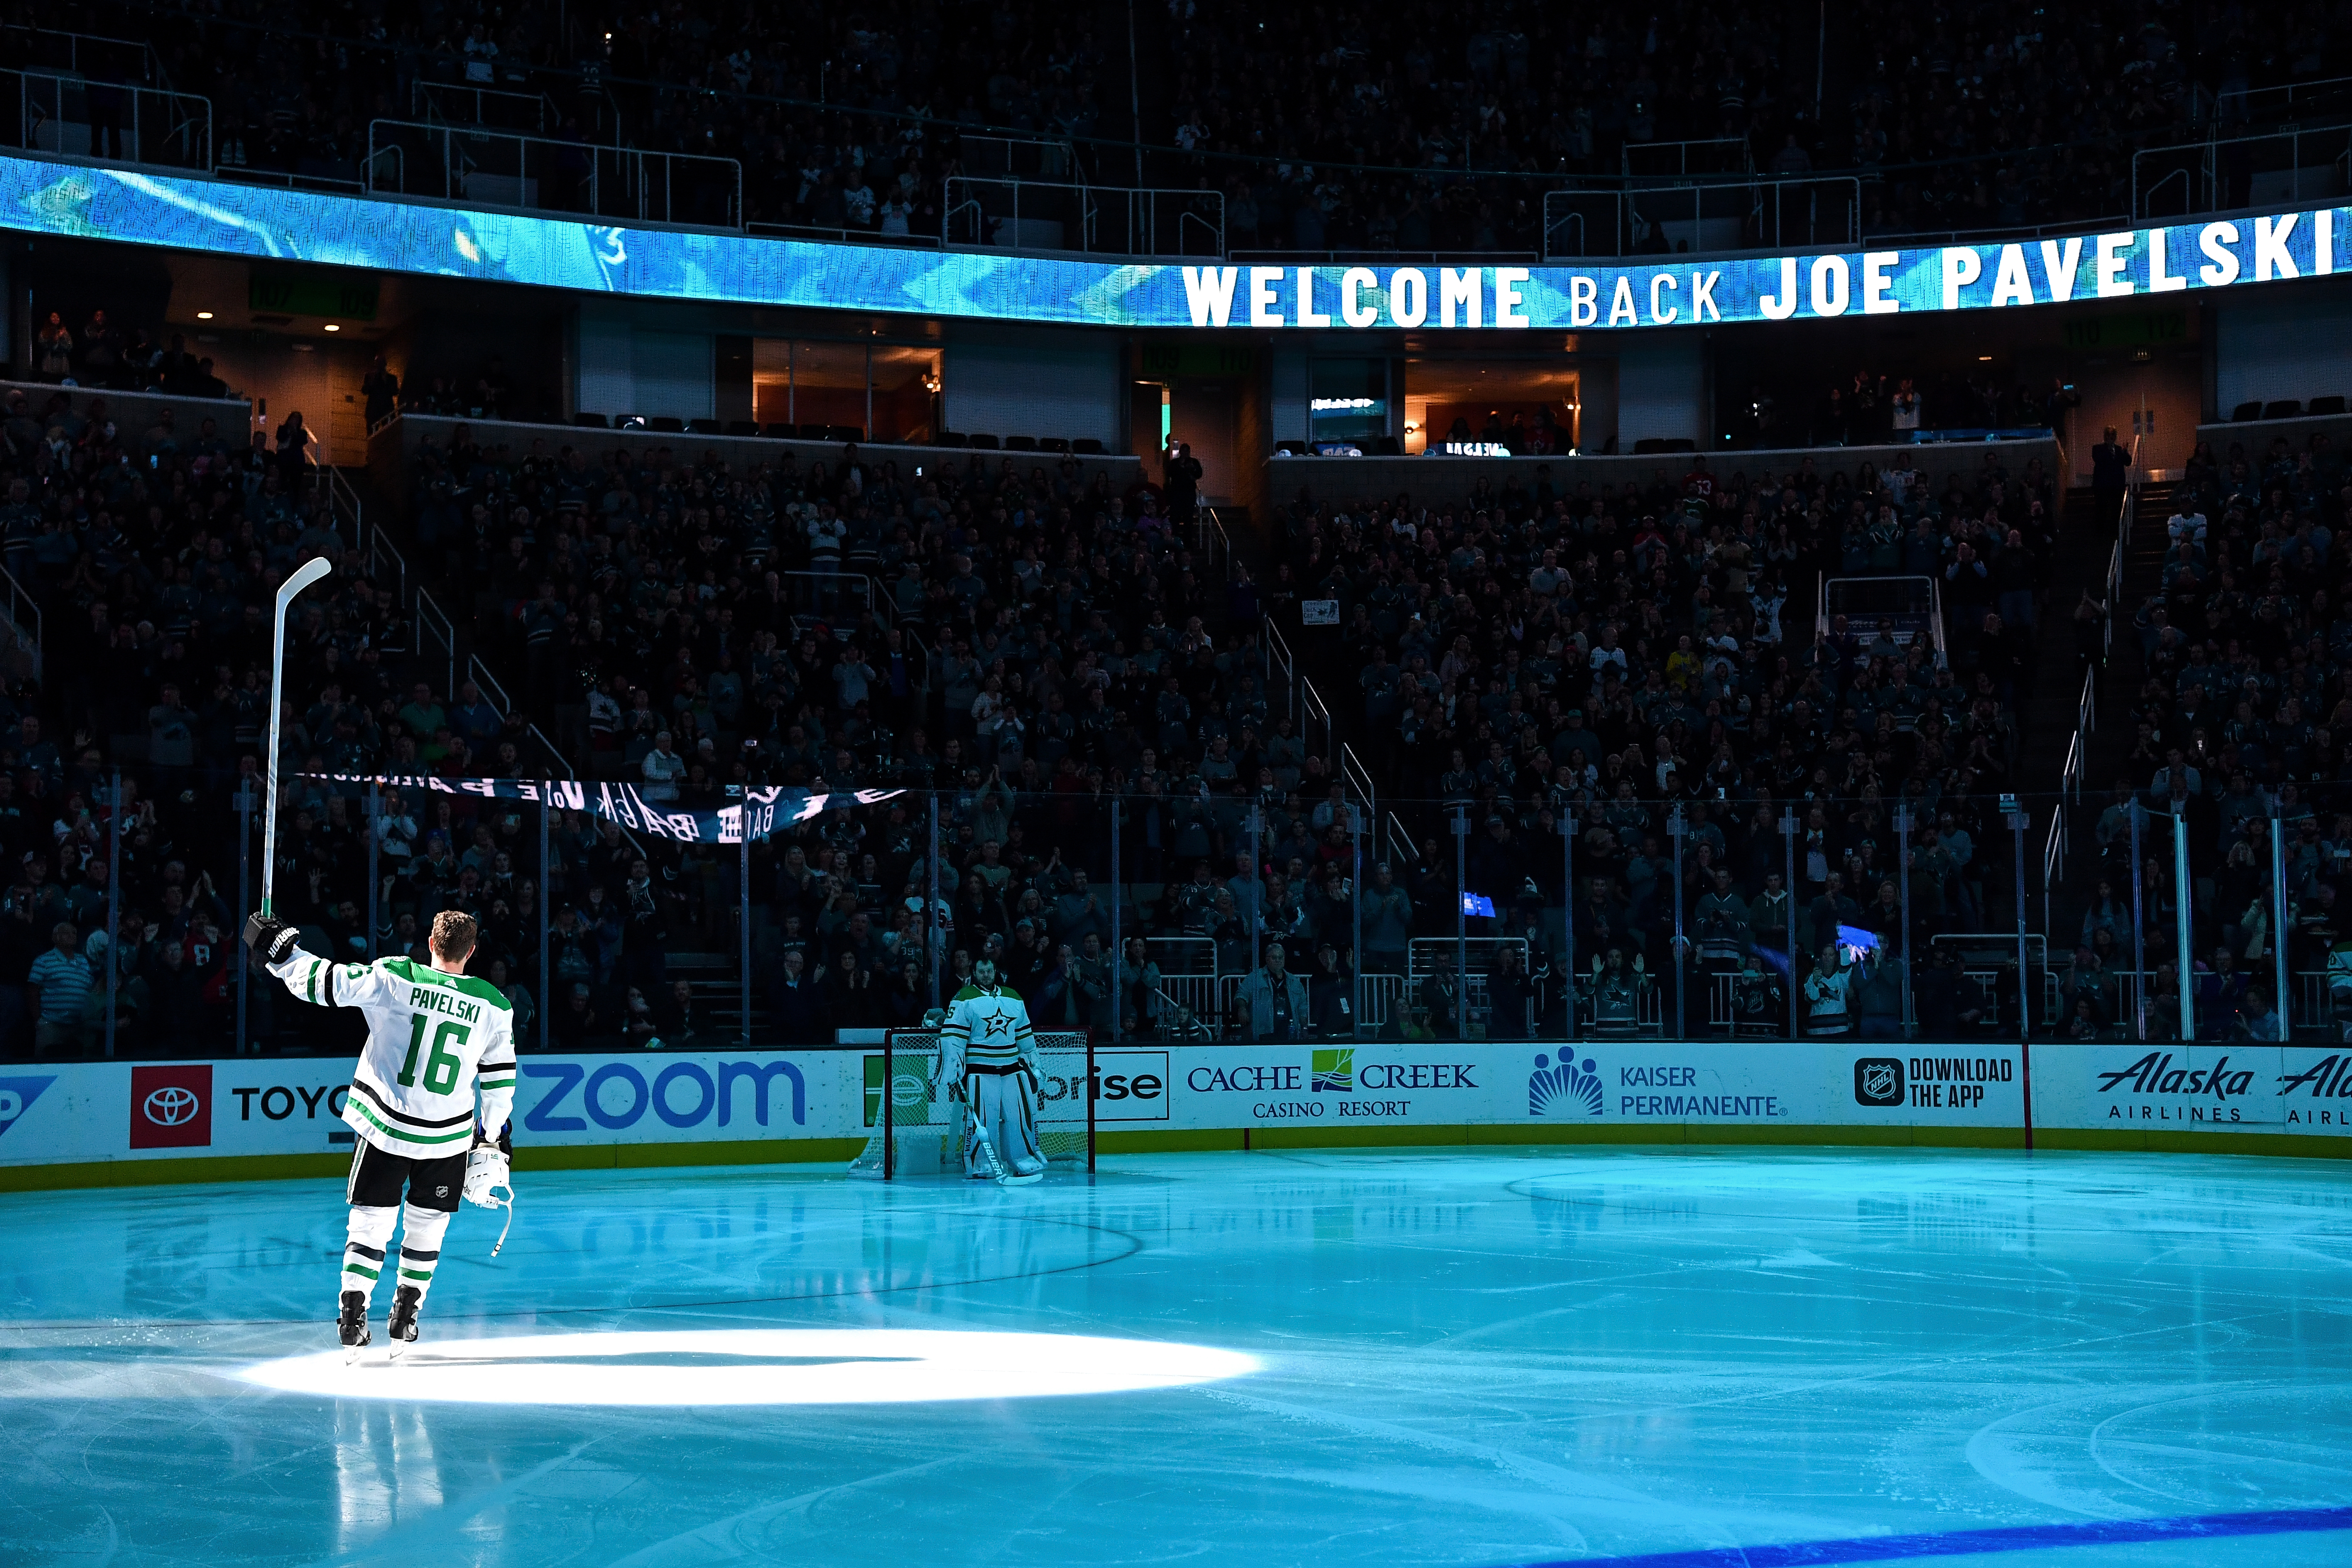 SAN JOSE, CA - JANUARY 11: Joe Pavelski #16 of the Dallas Stars is honored before his first game as a visitor against the San Jose Sharks at SAP Center on January 11, 2020 in San Jose, California.